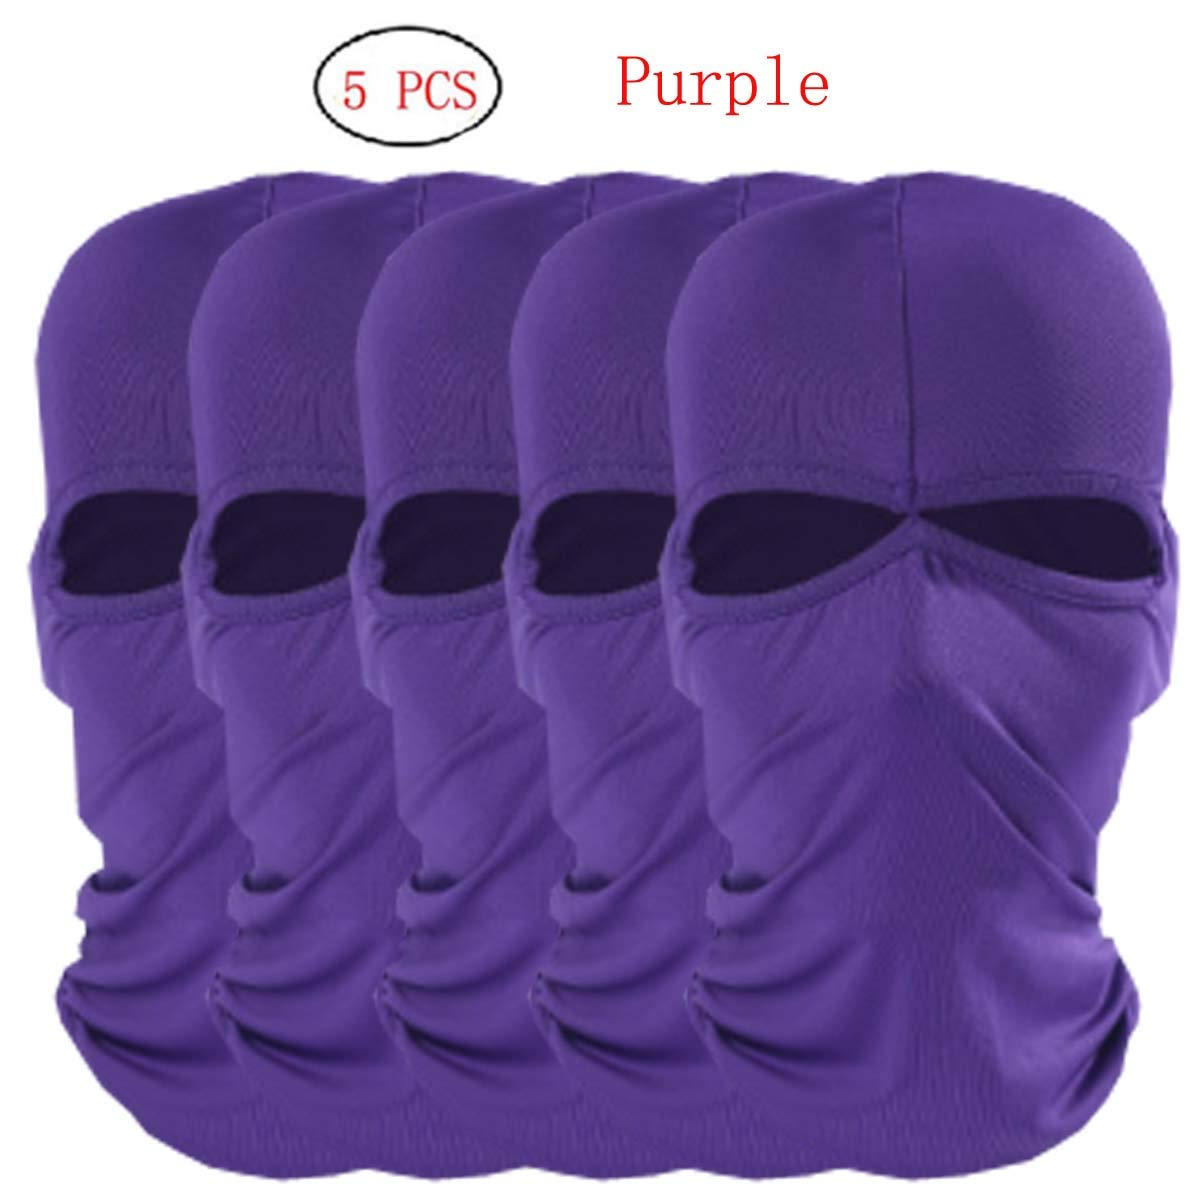 5pcs lot 2 Holes Purple Windproof Ski Mask Cold Weather Face Mask Motorcycle Neck Warmer or Tactical Ultimate Thermal Retention in Outdoors Super Comfortable Hypo-allergenic Moisture Wicking by CxYuan